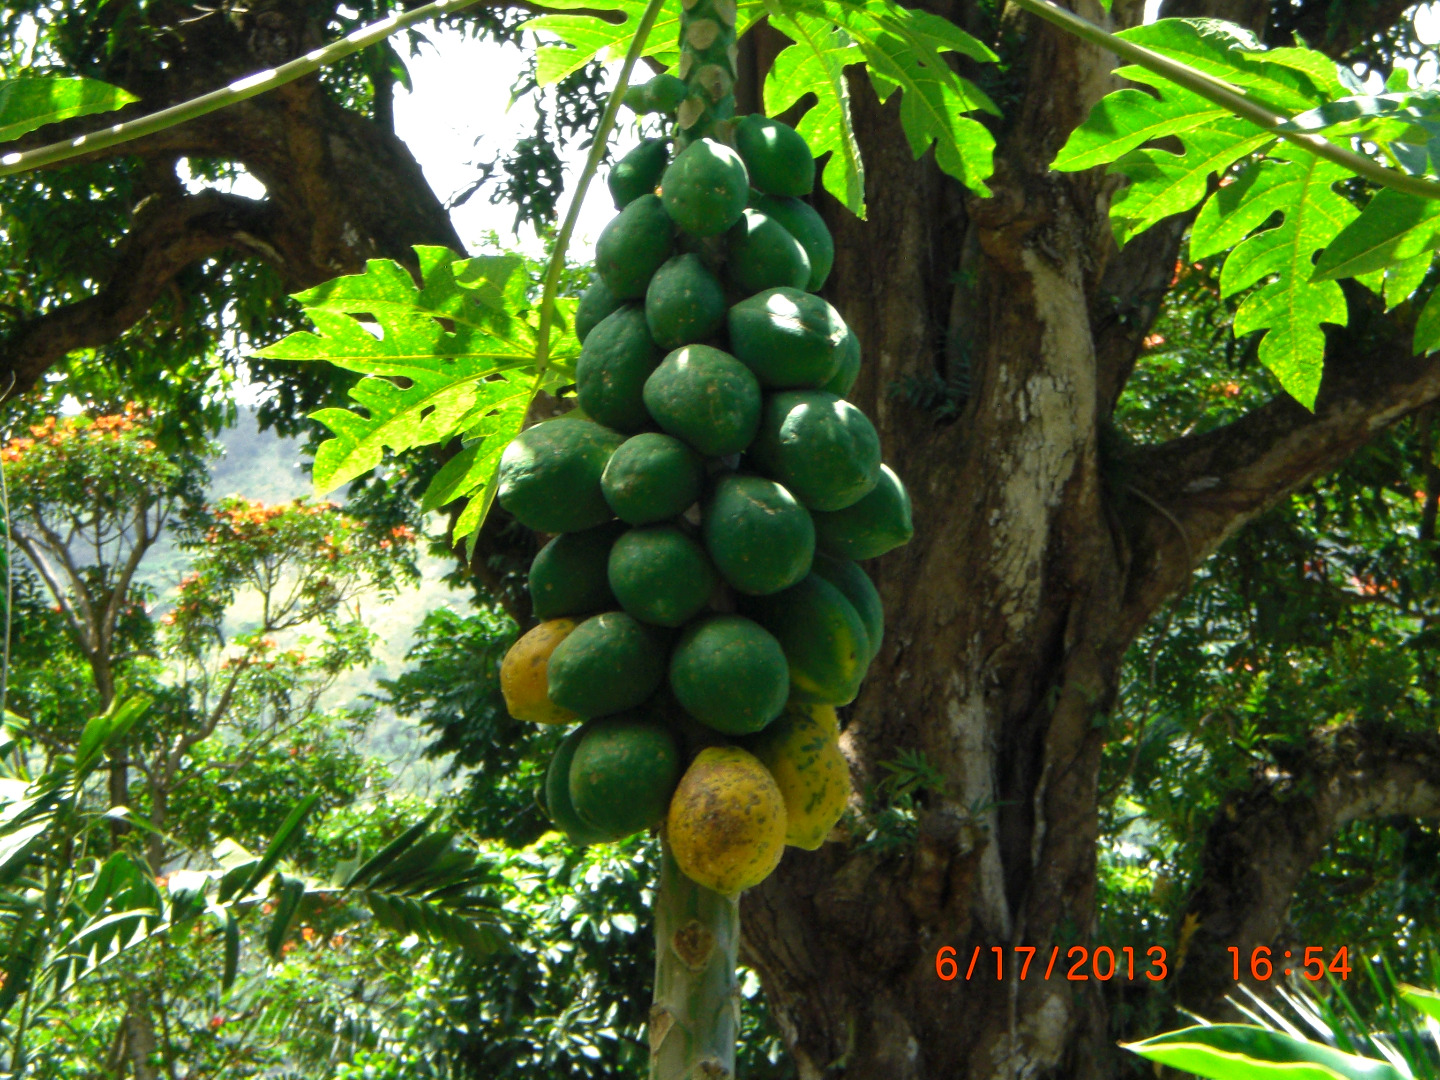 I have bought papayas from the local farmers and also bought some from the walmart in Kona. All of them are tasted very good. Everybody in our family loved them.